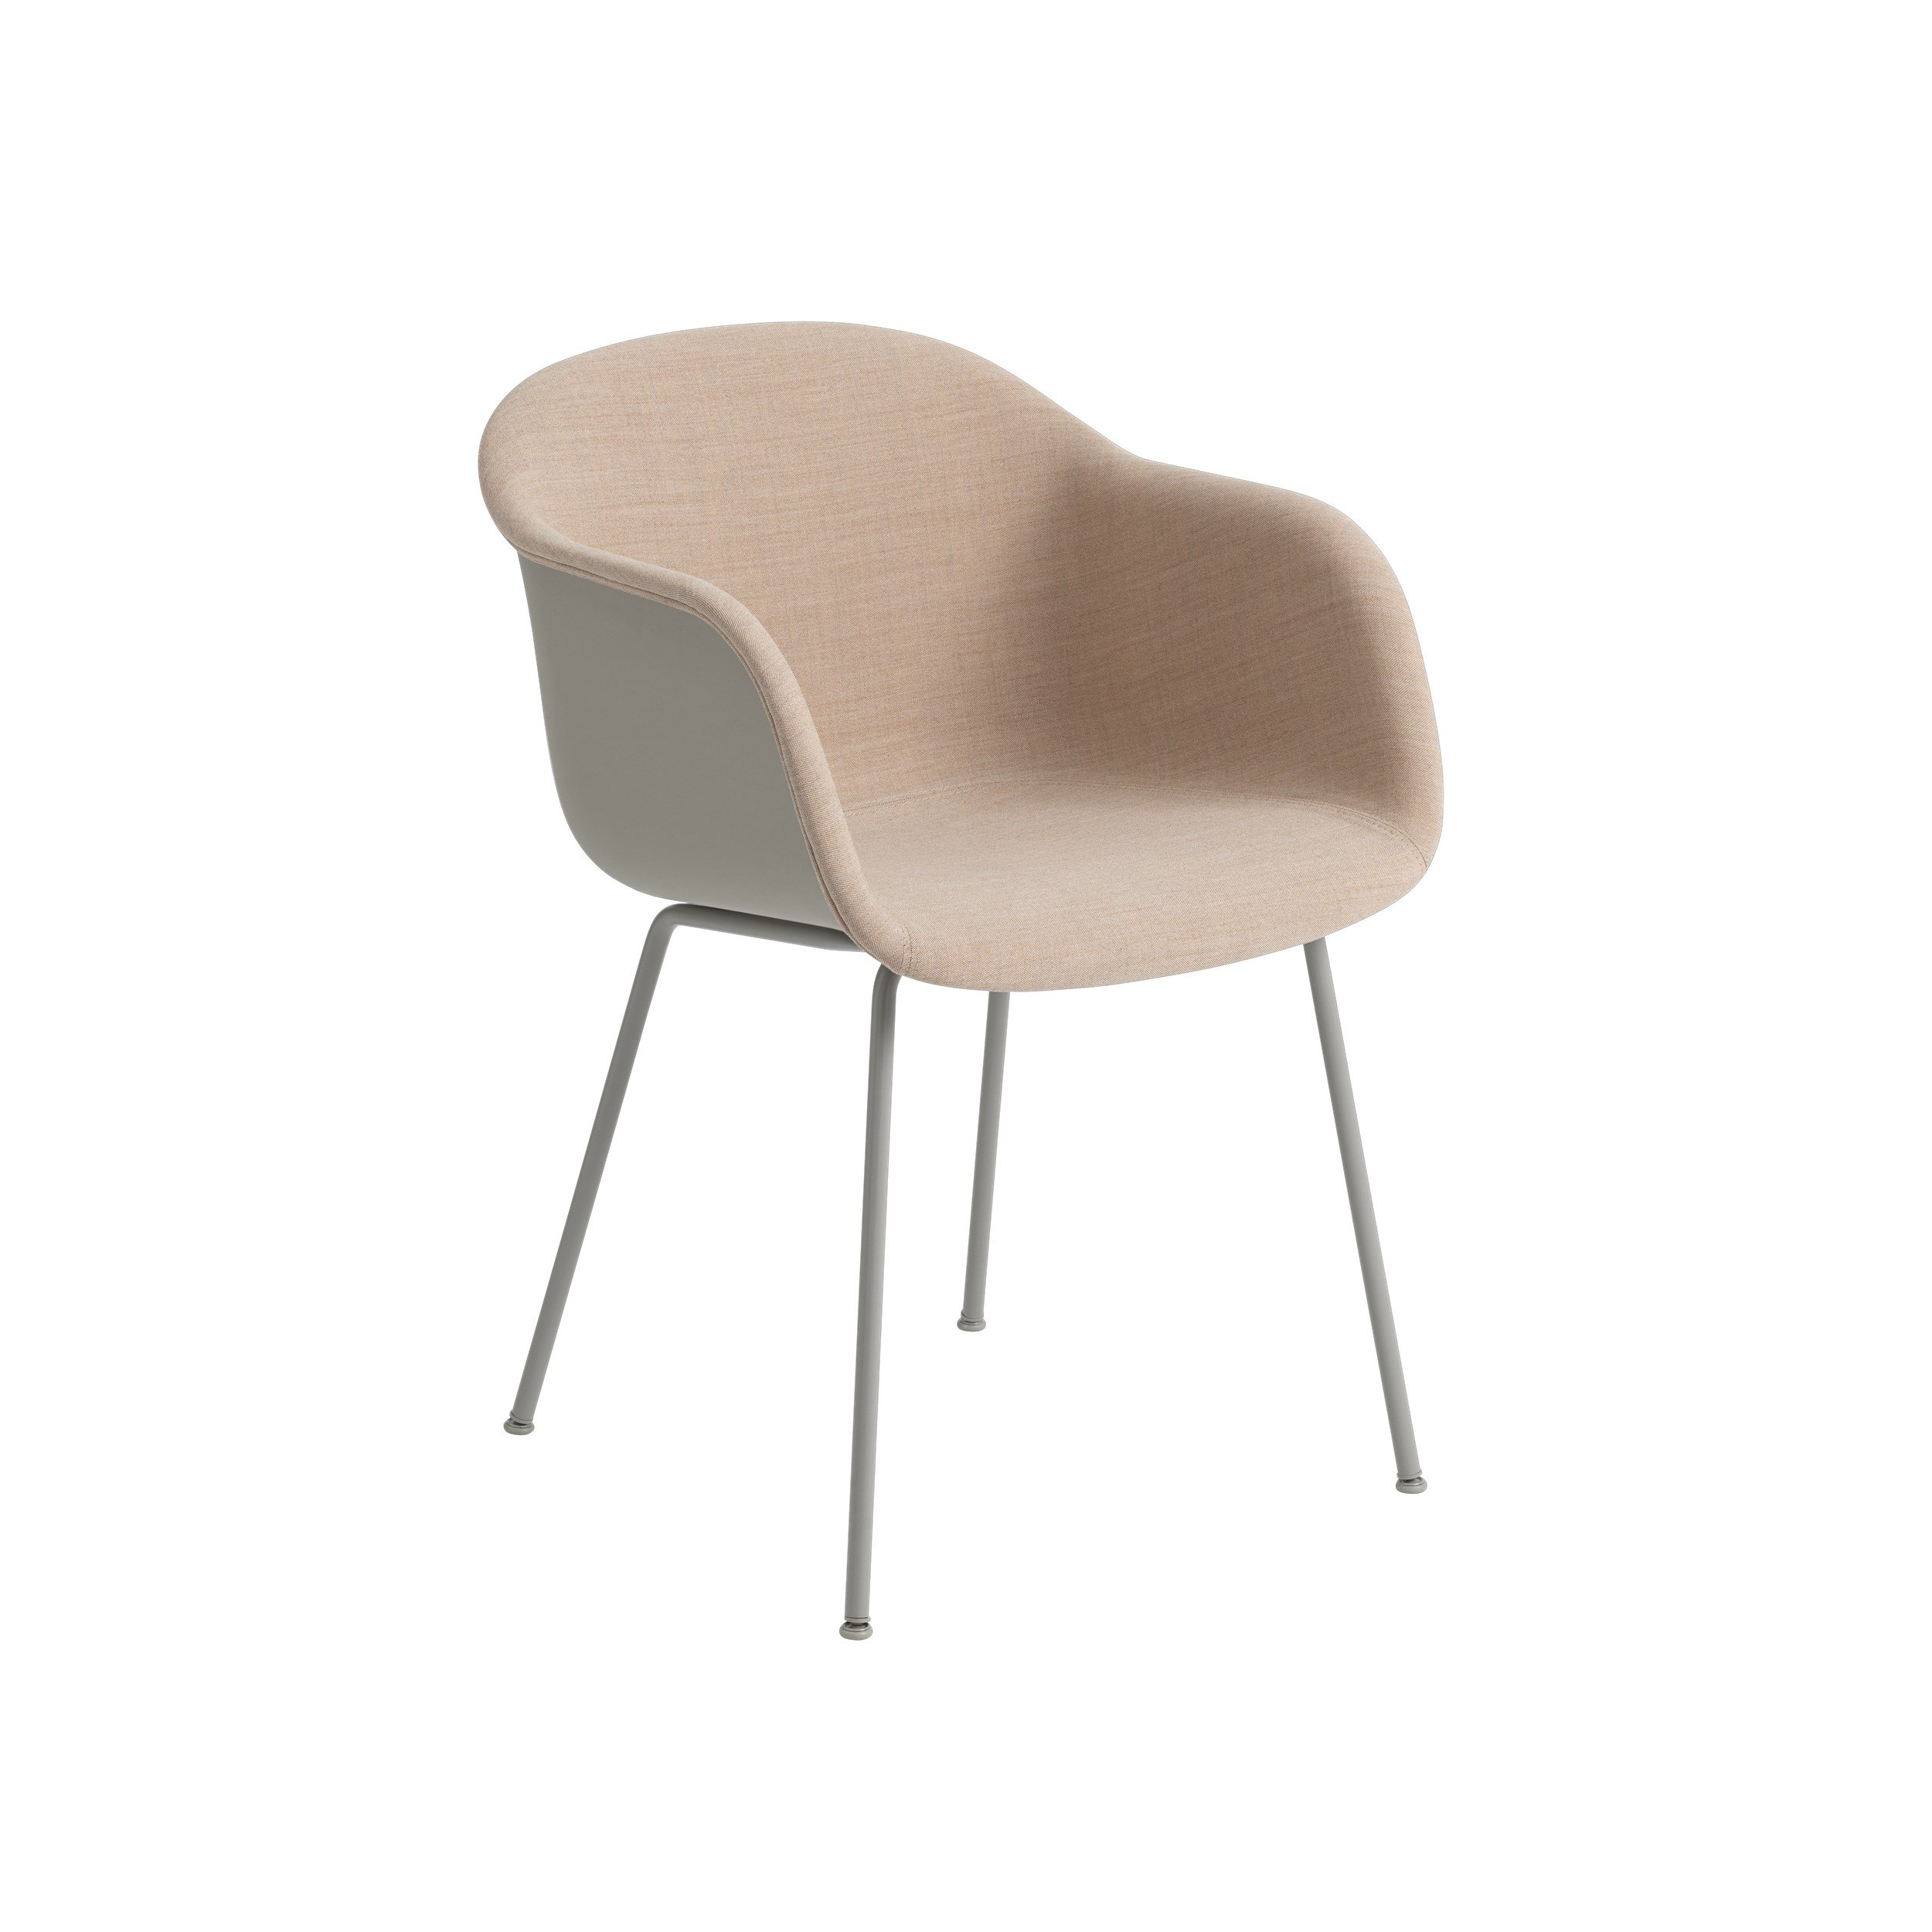 The Significance of Knoll Constellation of Brands- Seating Spotlight 5